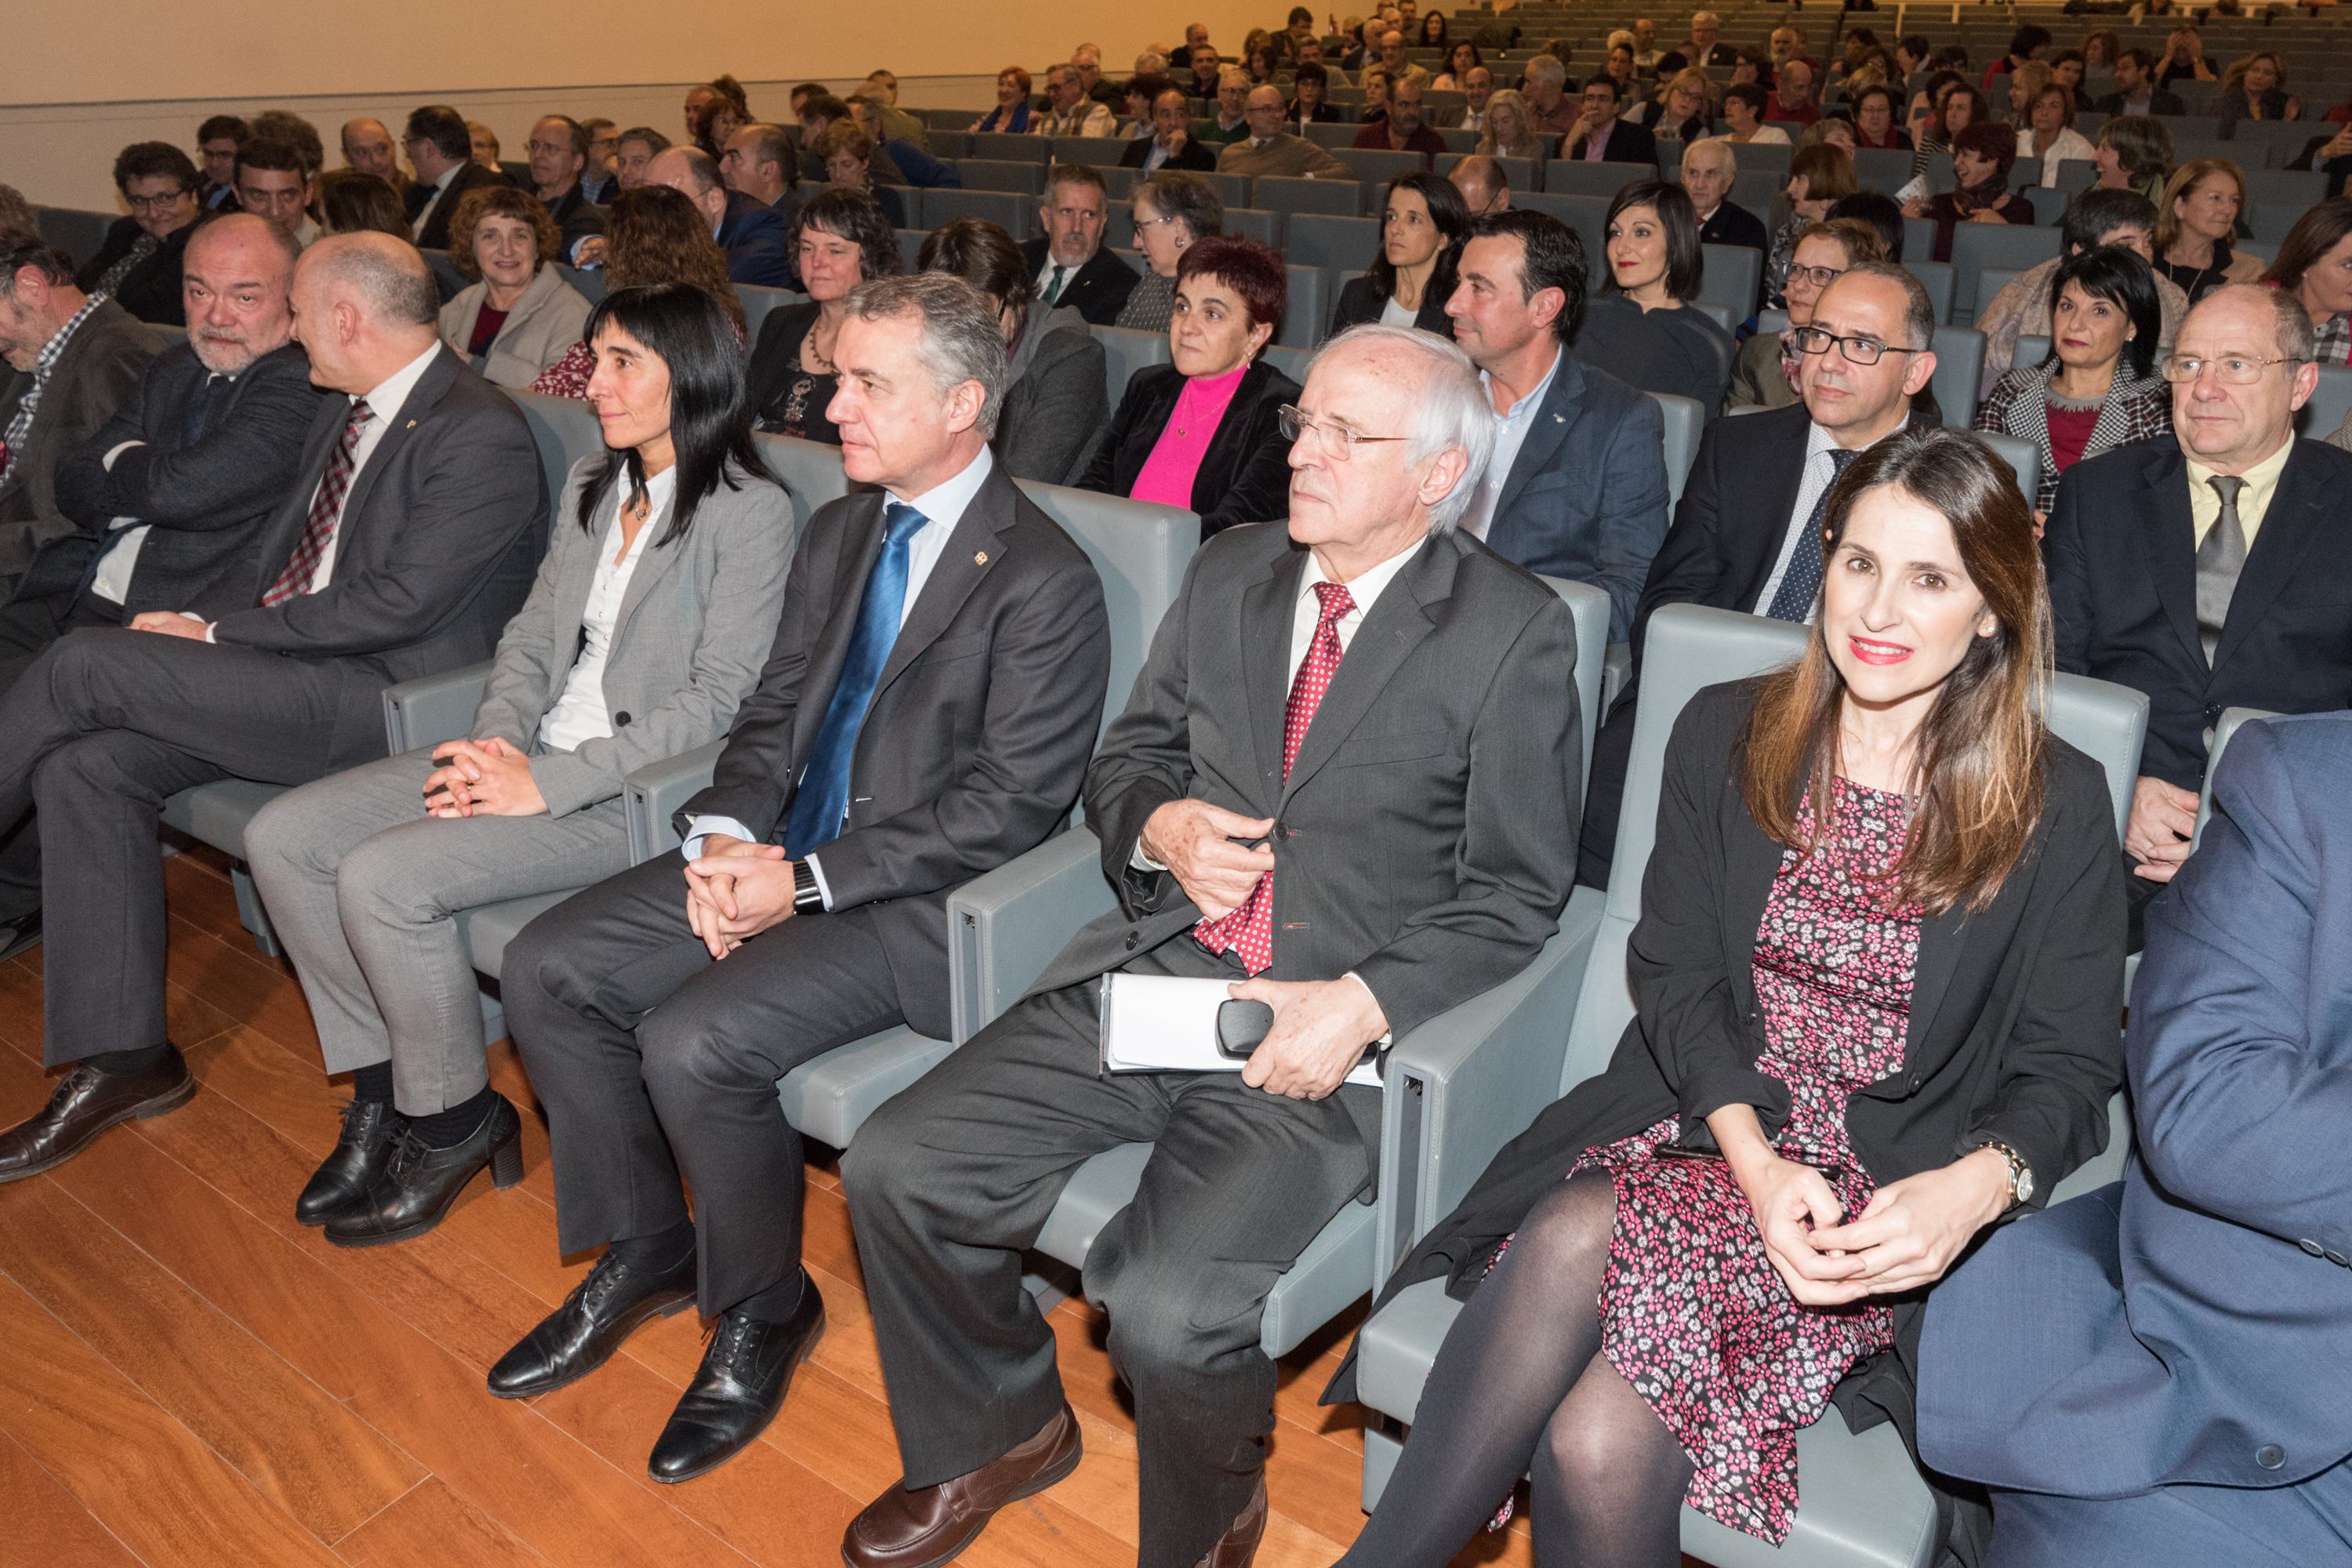 20181212_lhk_universidad_071.jpg